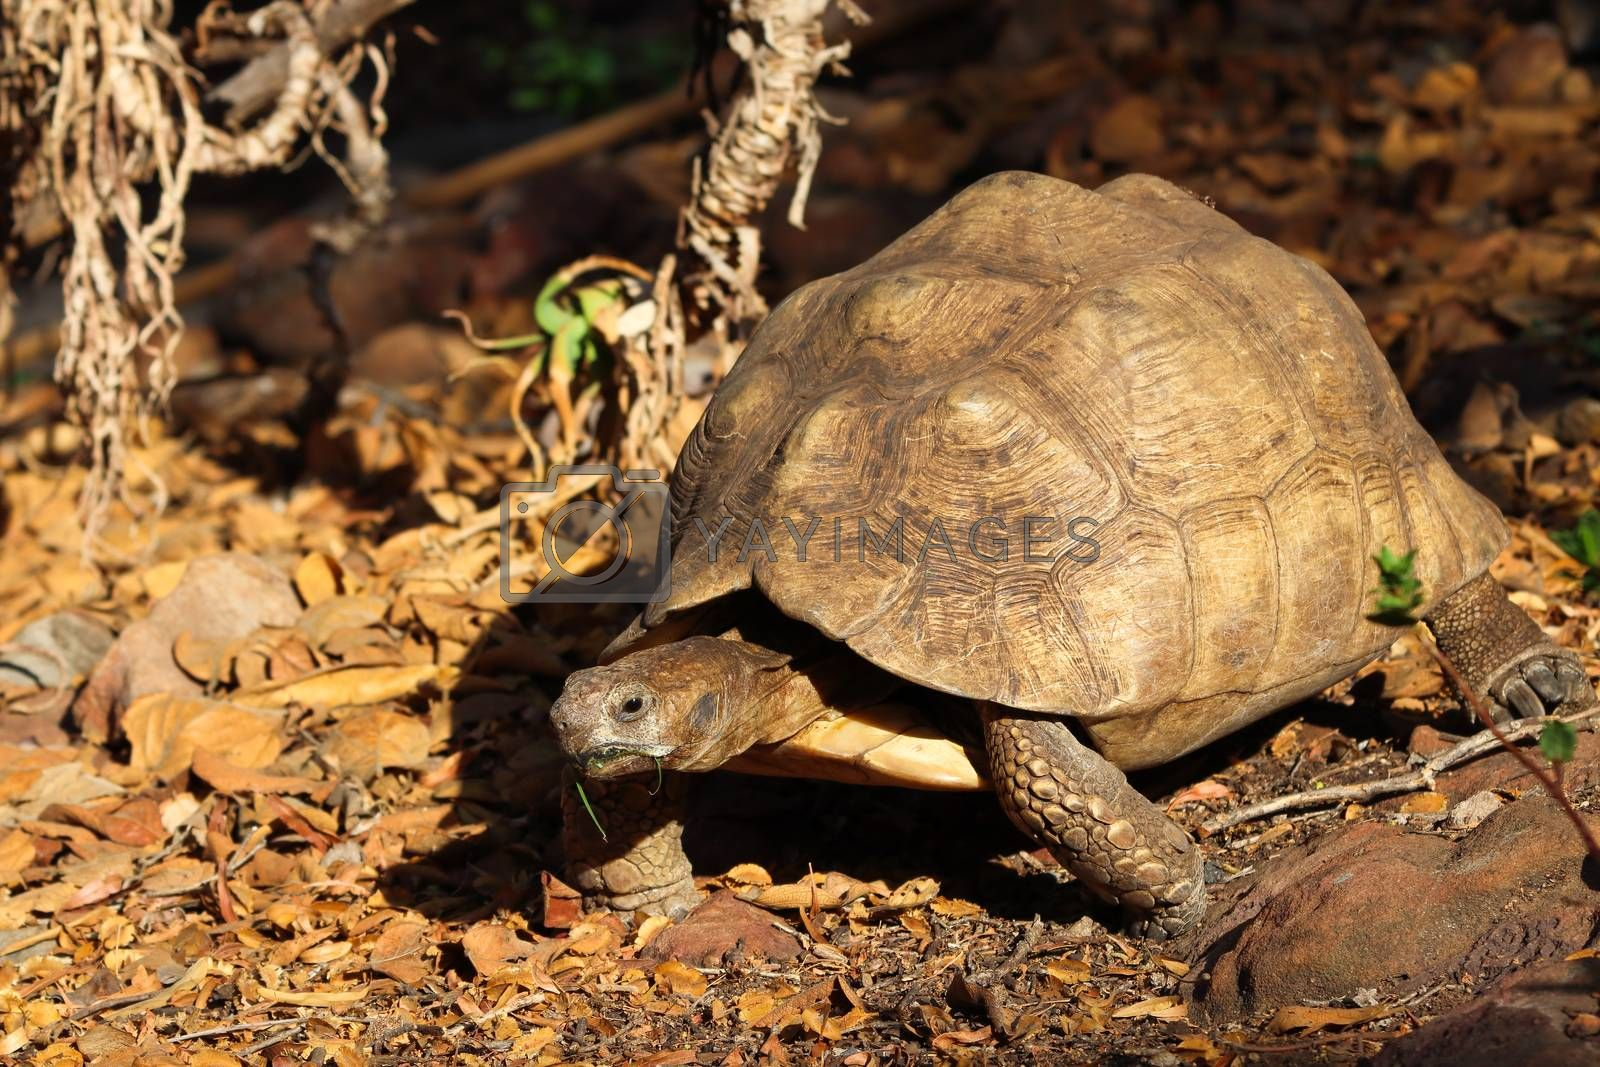 An aged old leopard tortoise (Stigmochelys pardalis) in natural African habitat during autumn, Pretoria, South Africa